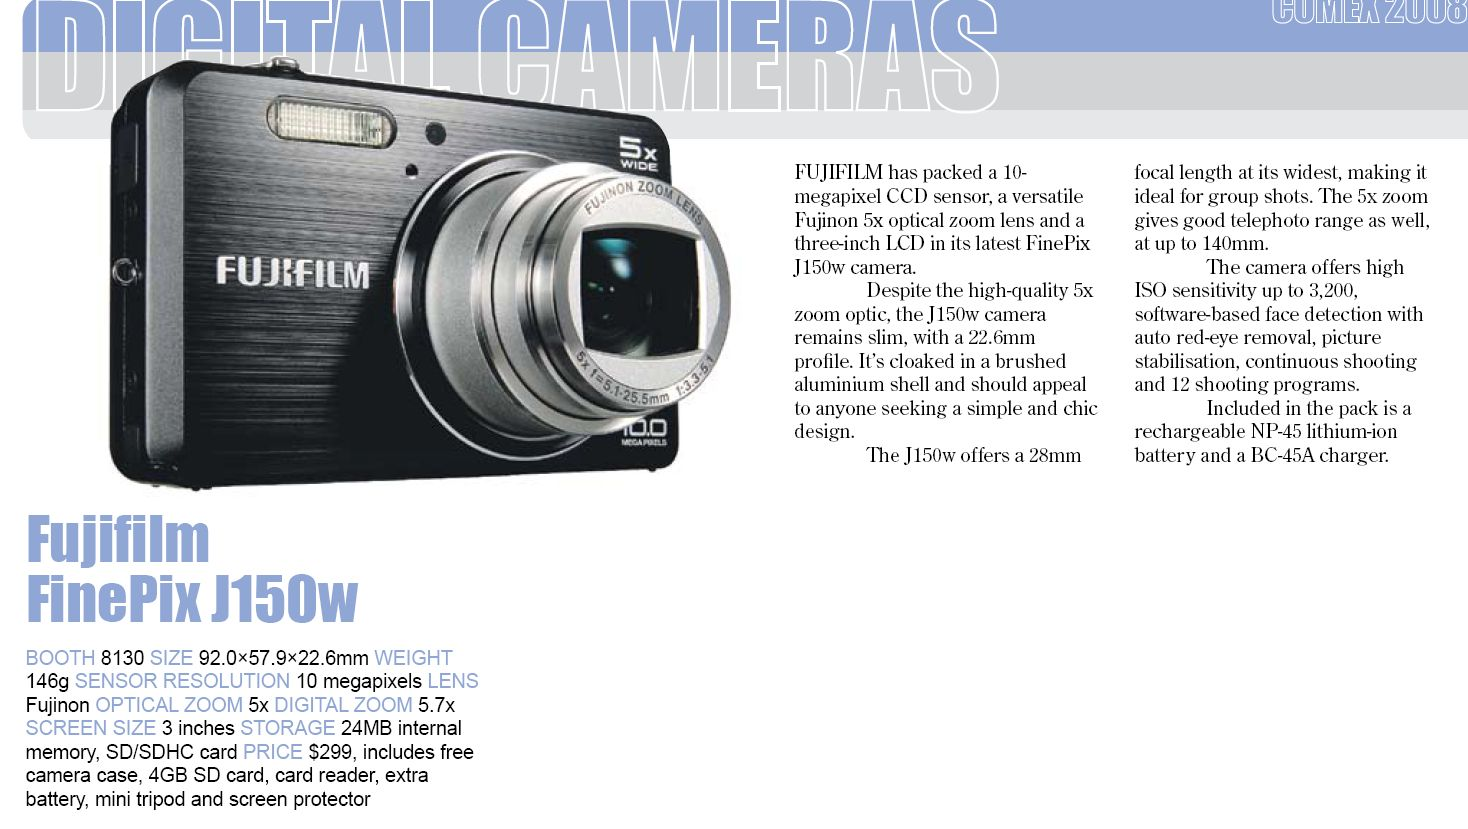 Comex 2008 price list image brochure of Fujifilm Finepix J150w